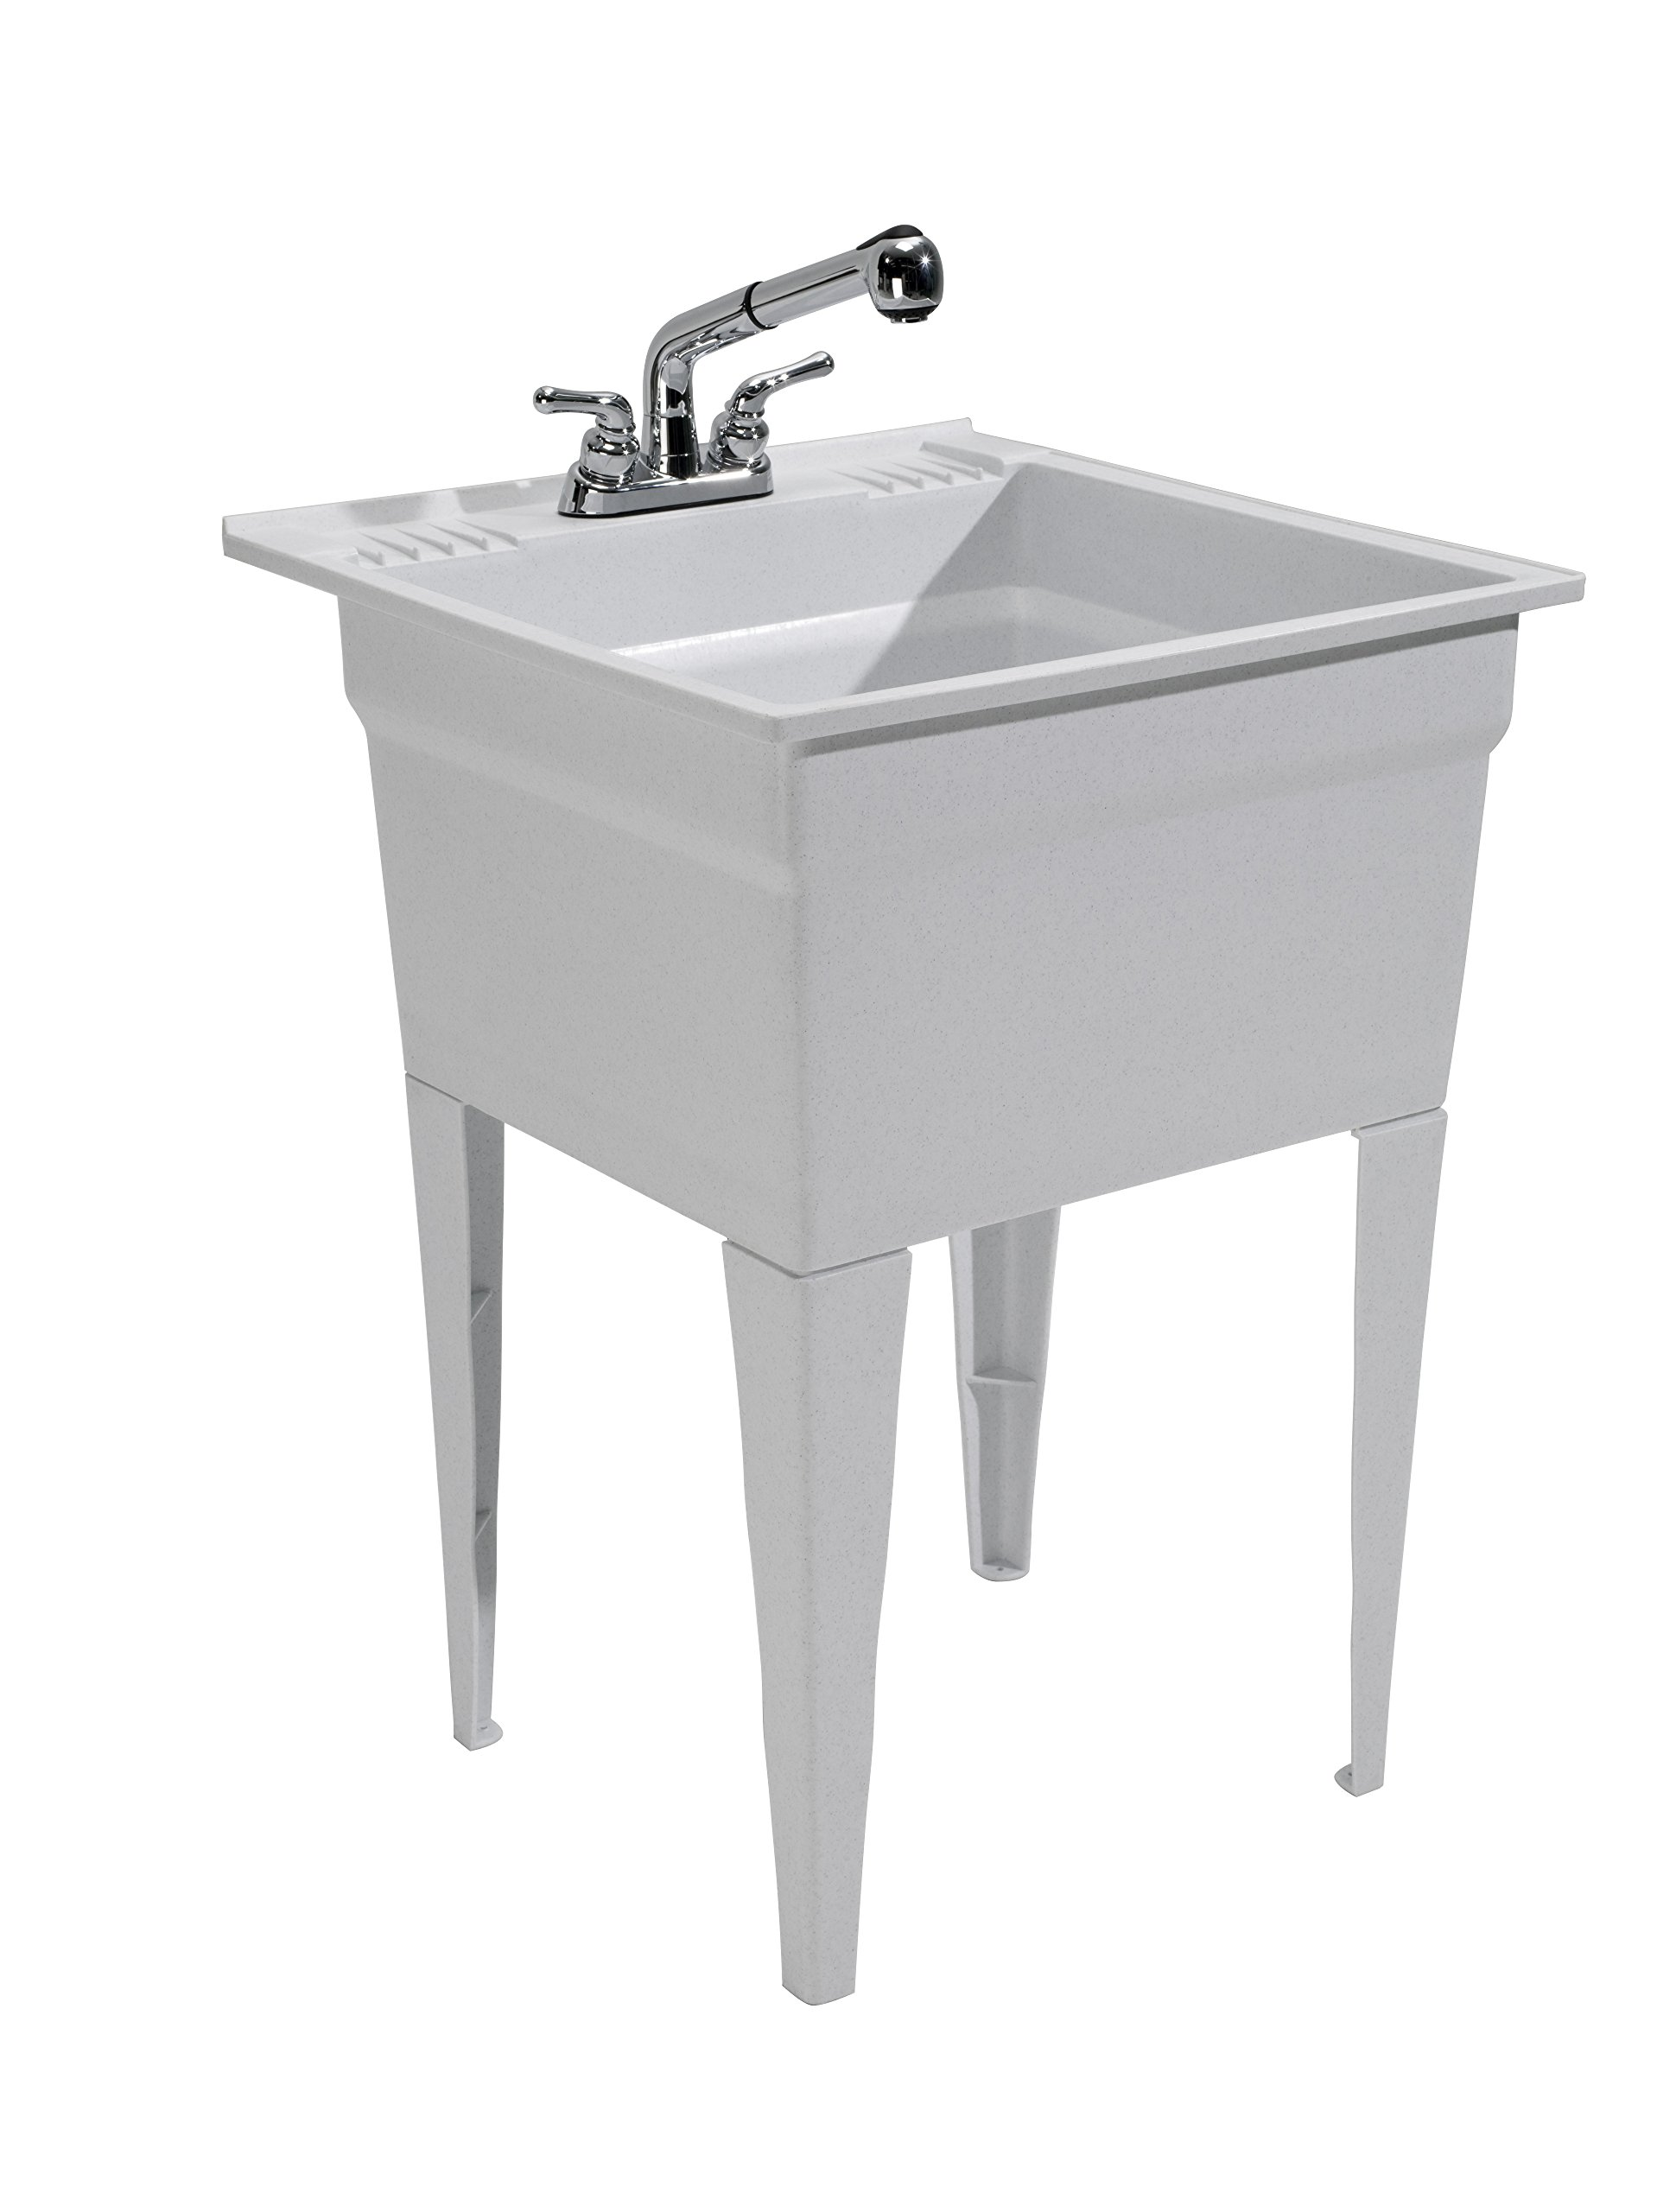 CASHEL 1960-32-02 Heavy Duty Sink - Fully Loaded Sink Kit, Granite by Cashel